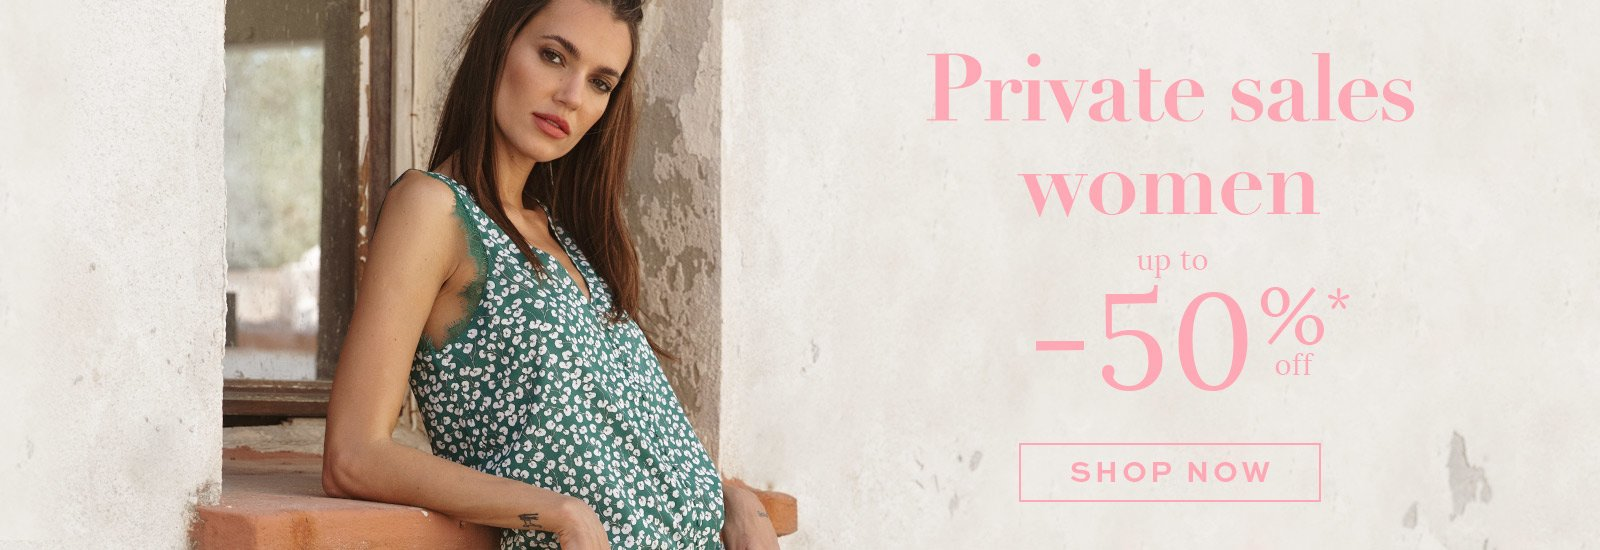 private sales women